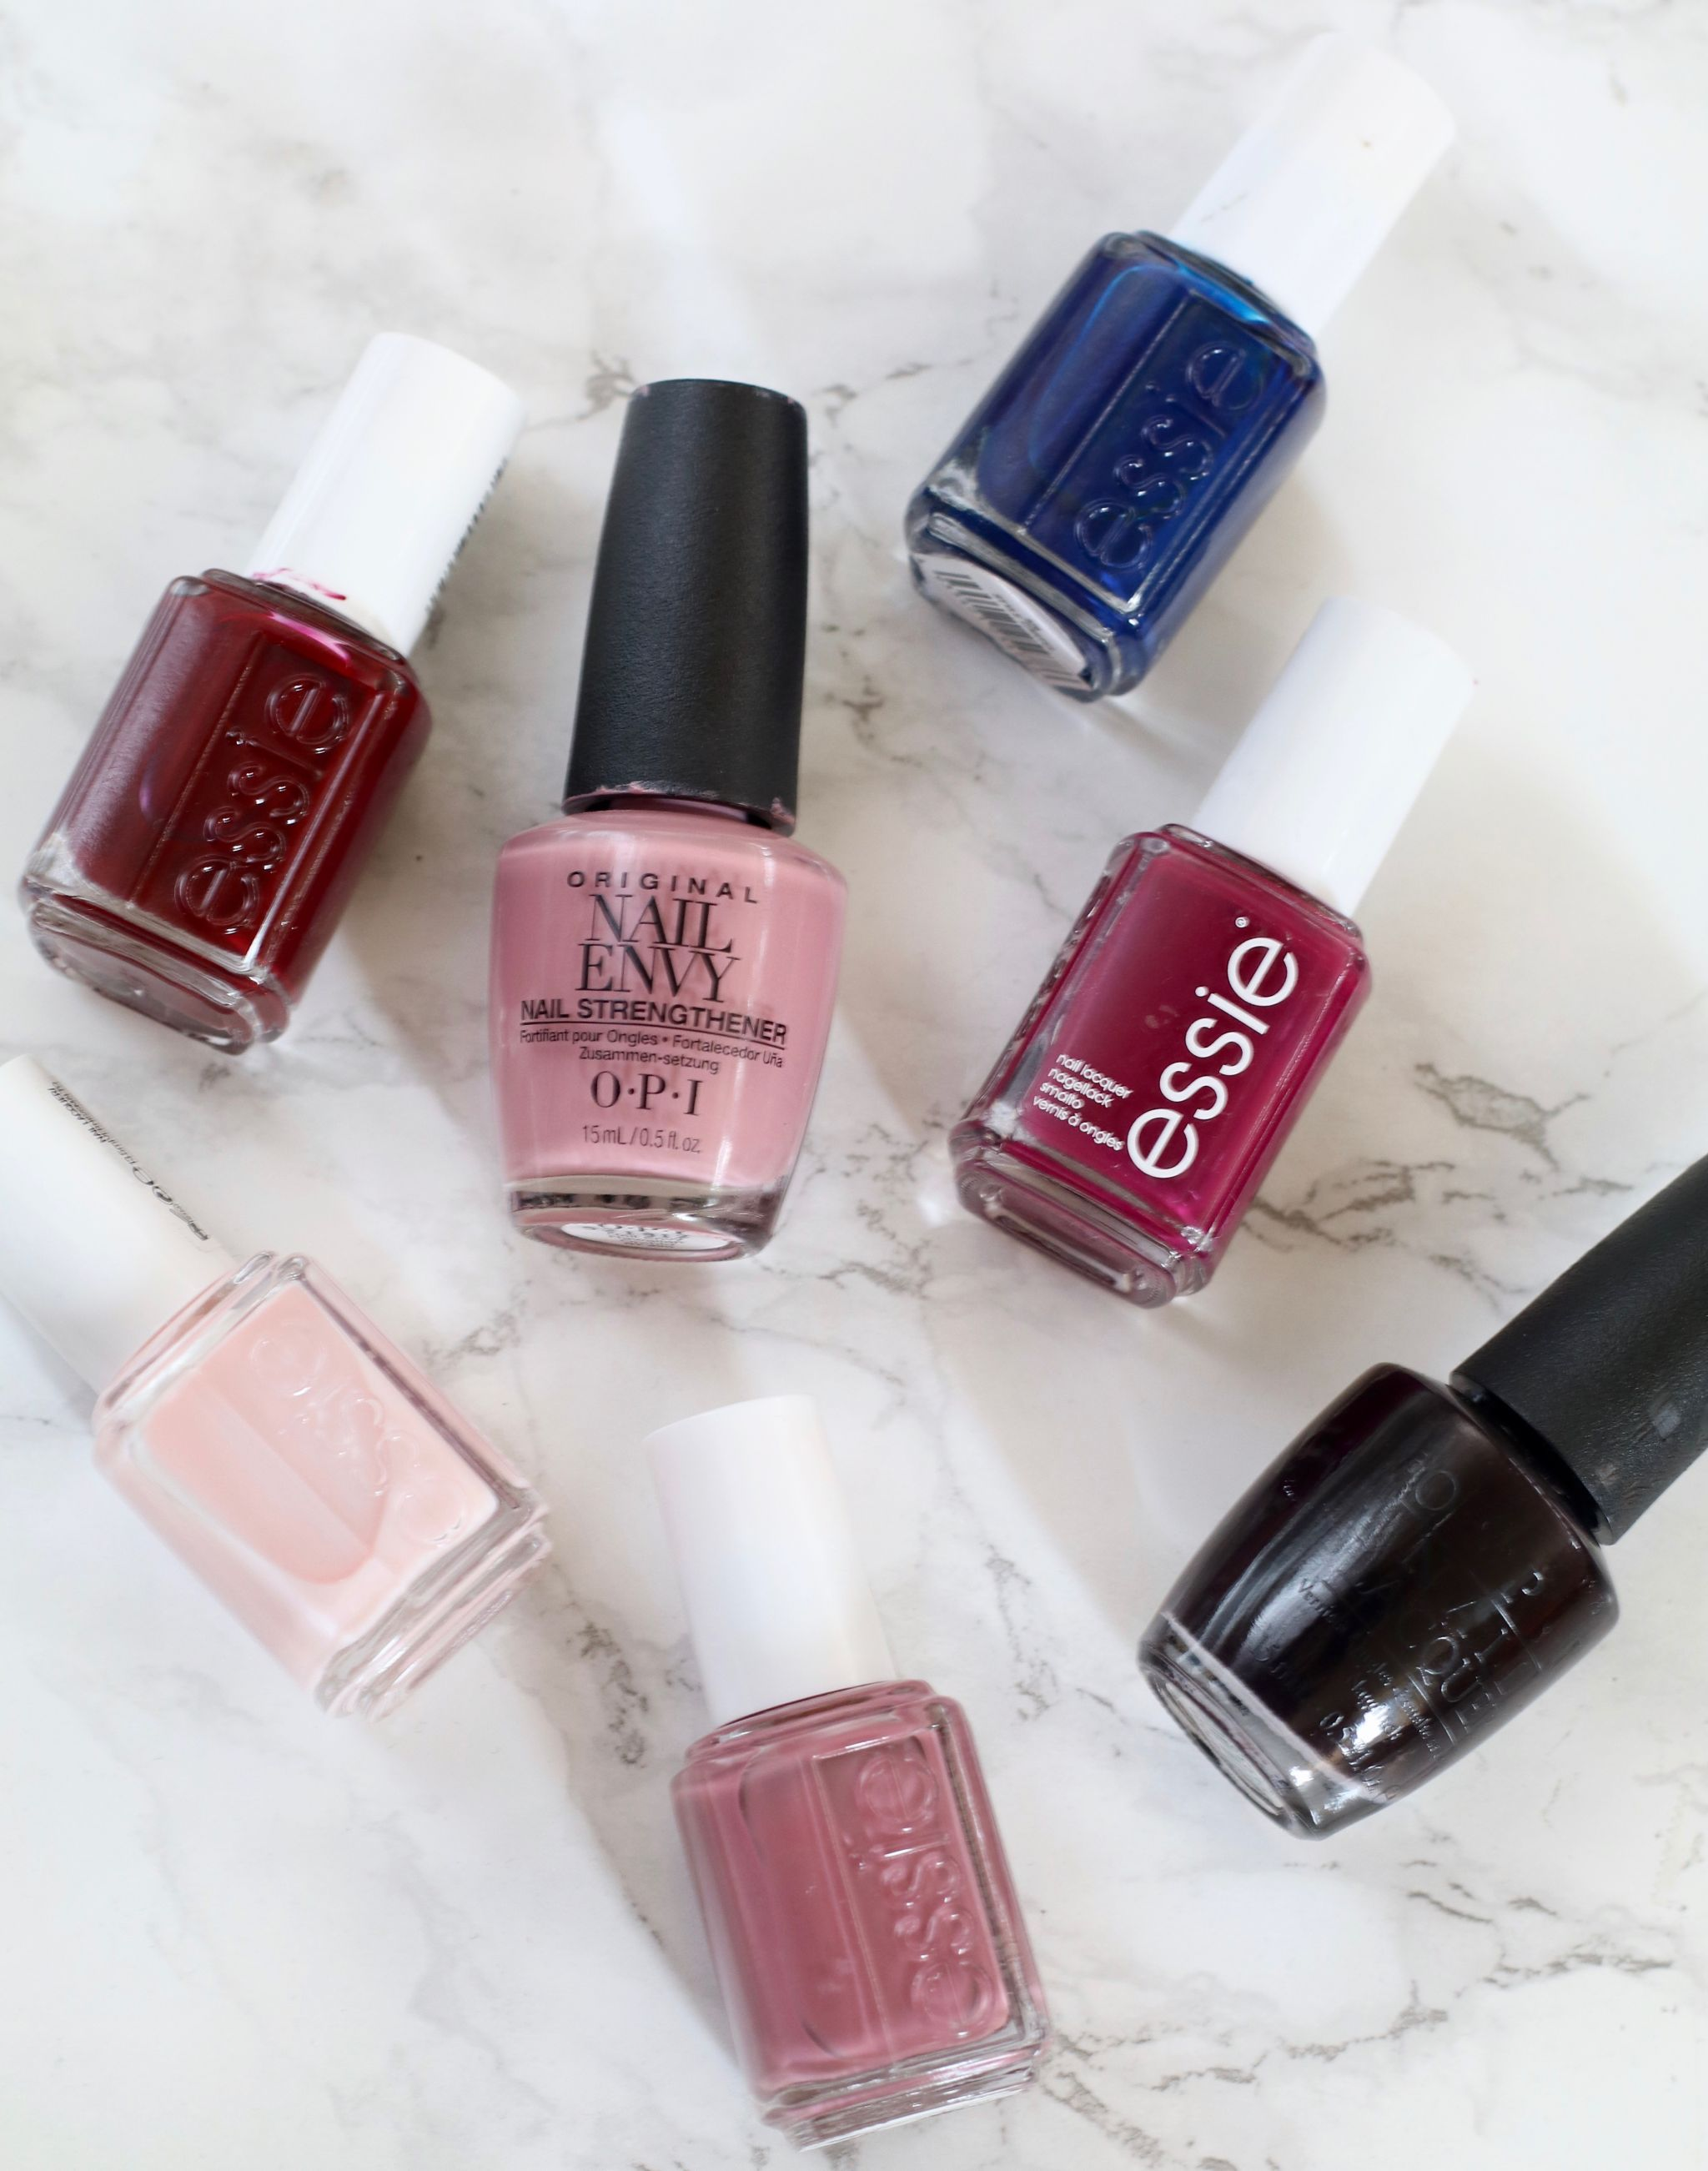 nail polish capsule collection - Essie Mademoiselle, Island hopping, style cartel, bahama mama, berry naughty, OPI nail envy hawaiian orchid, lincoln park after dark